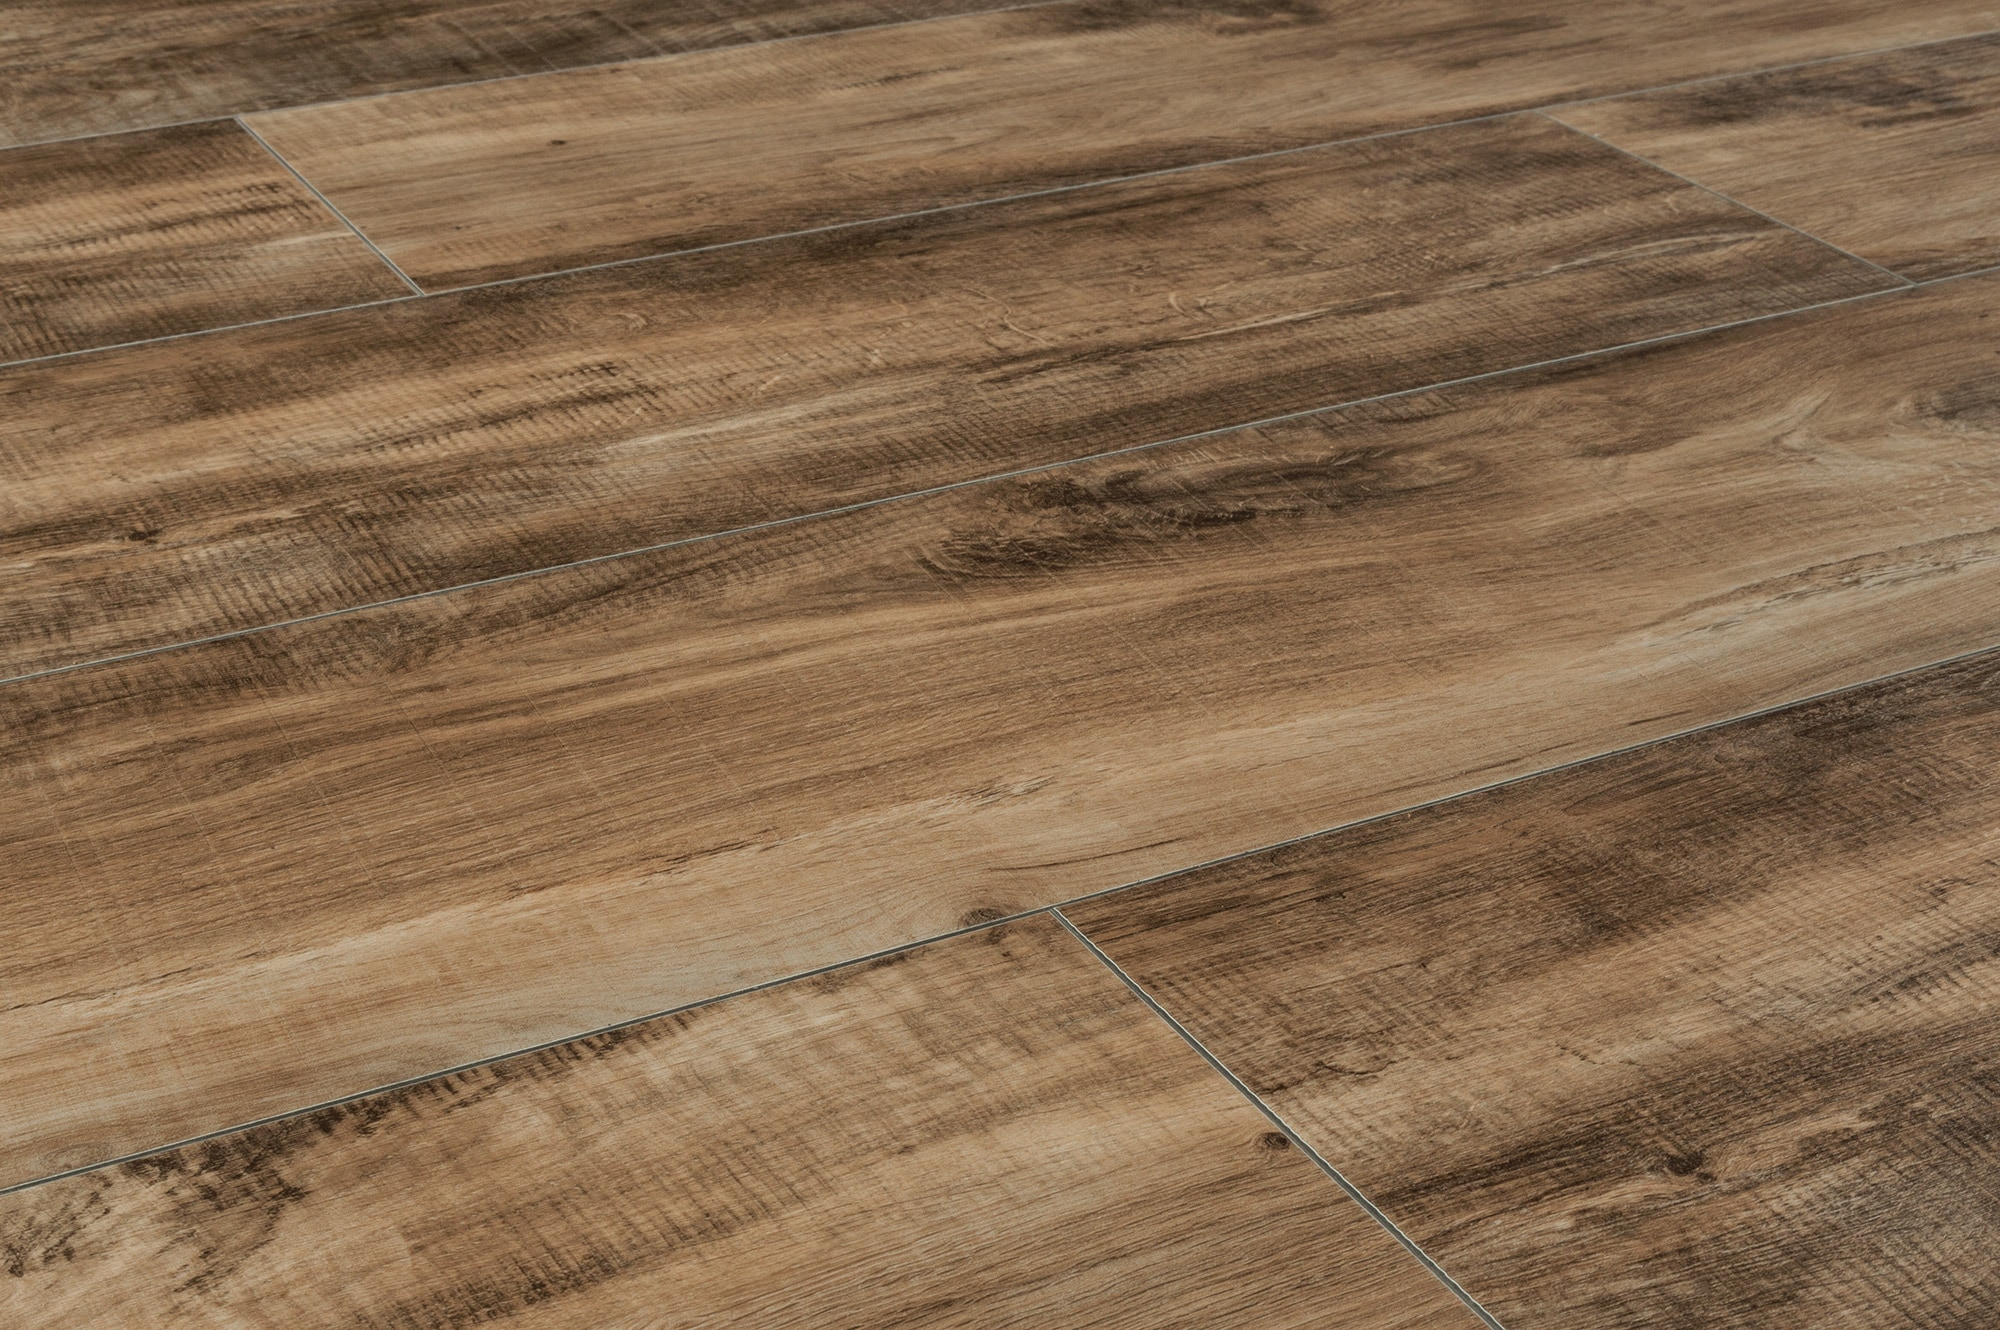 Vesdura Vinyl Planks 9 5mm Hdf Old Country Wide Plank